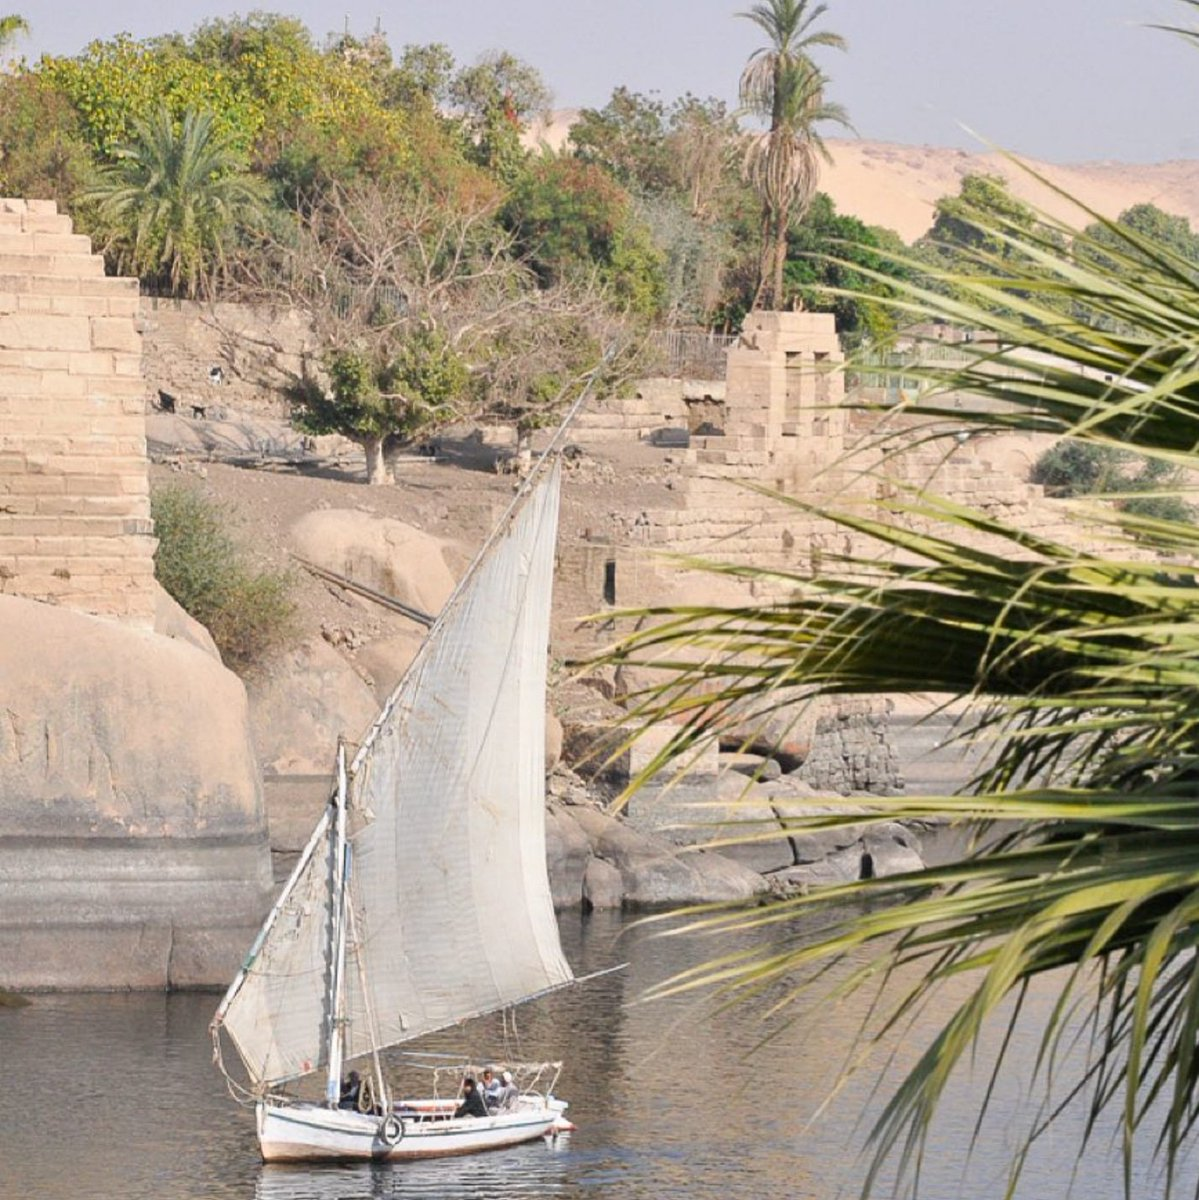 Every corner of The Sofitel Legend Old Cataract opens you up to the untouched beauty of Aswan. #SofitelWorld #LiveLikeLegends https://t.co/RcfORVeD7m